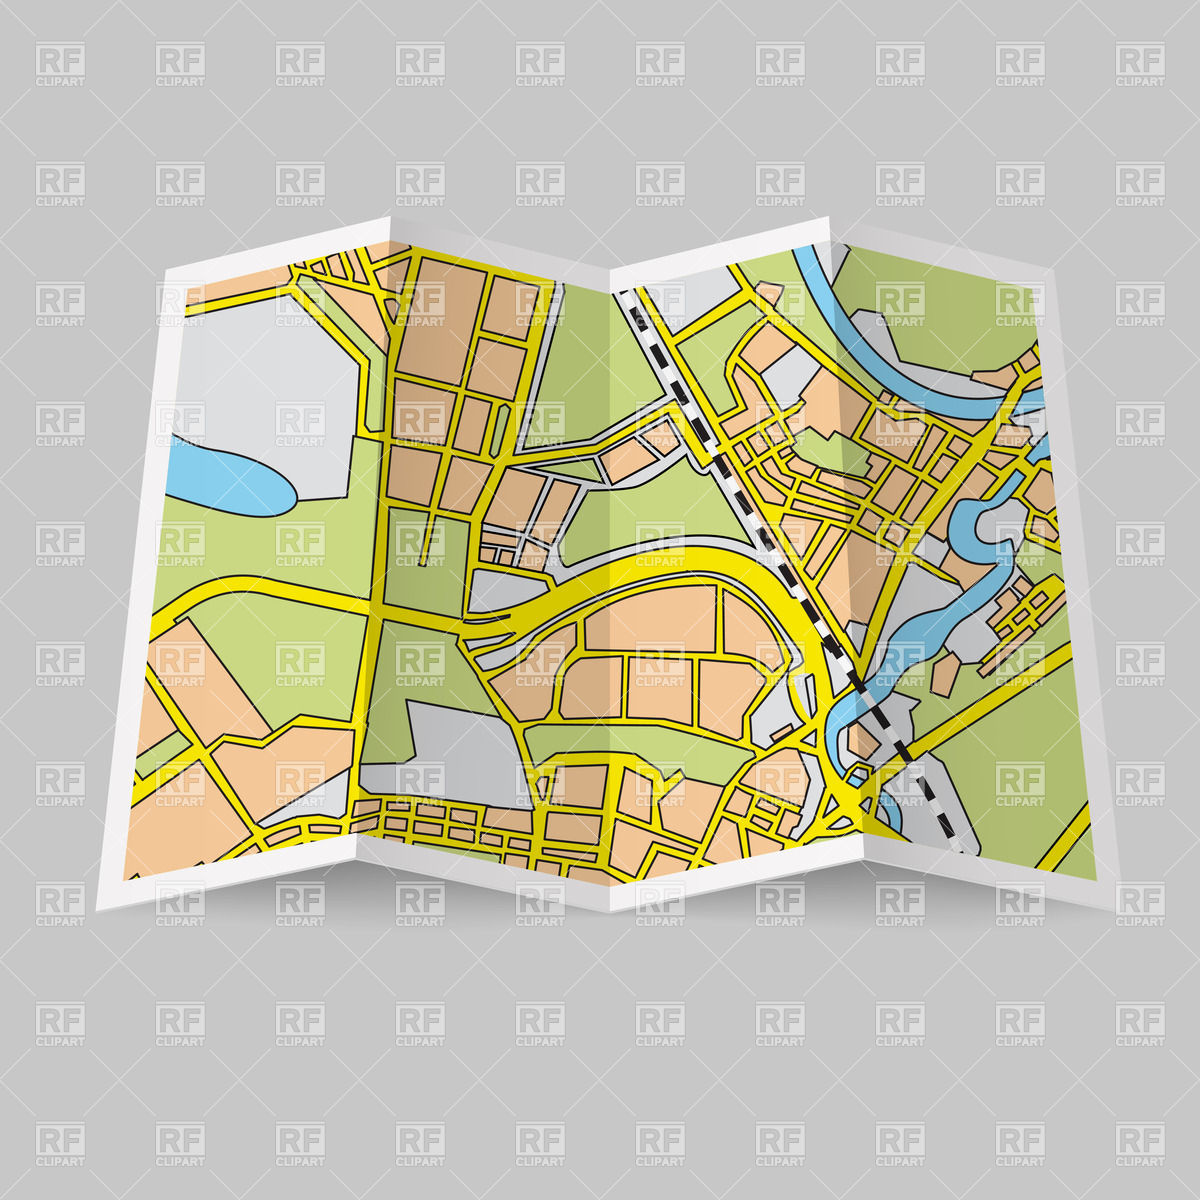 City road map clipart graphic transparent download Road map clipart outline - ClipartFest graphic transparent download